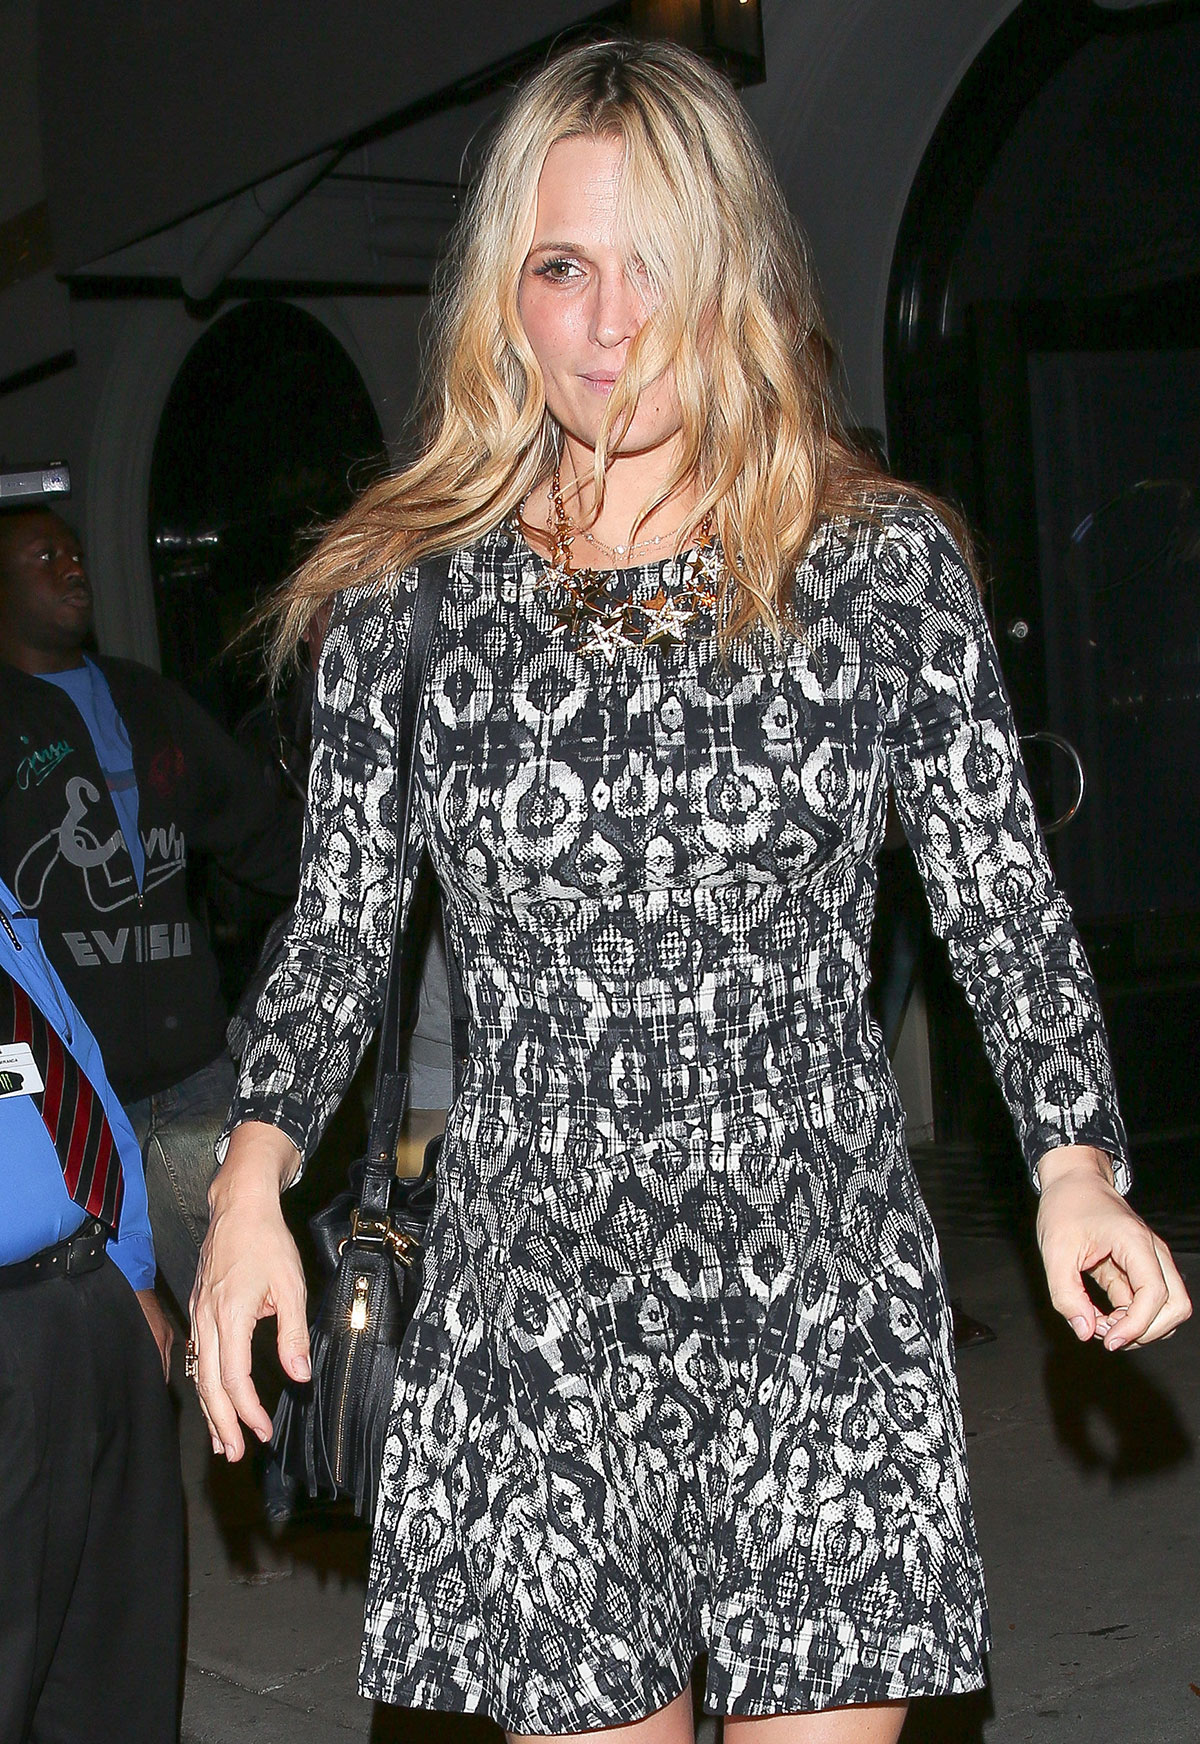 Molly sims archives page 2 of 7 hawtcelebs hawtcelebs - Molly Sims Archives Page 2 Of 7 Hawtcelebs Hawtcelebs Molly Sims Leaves Craig S In Download